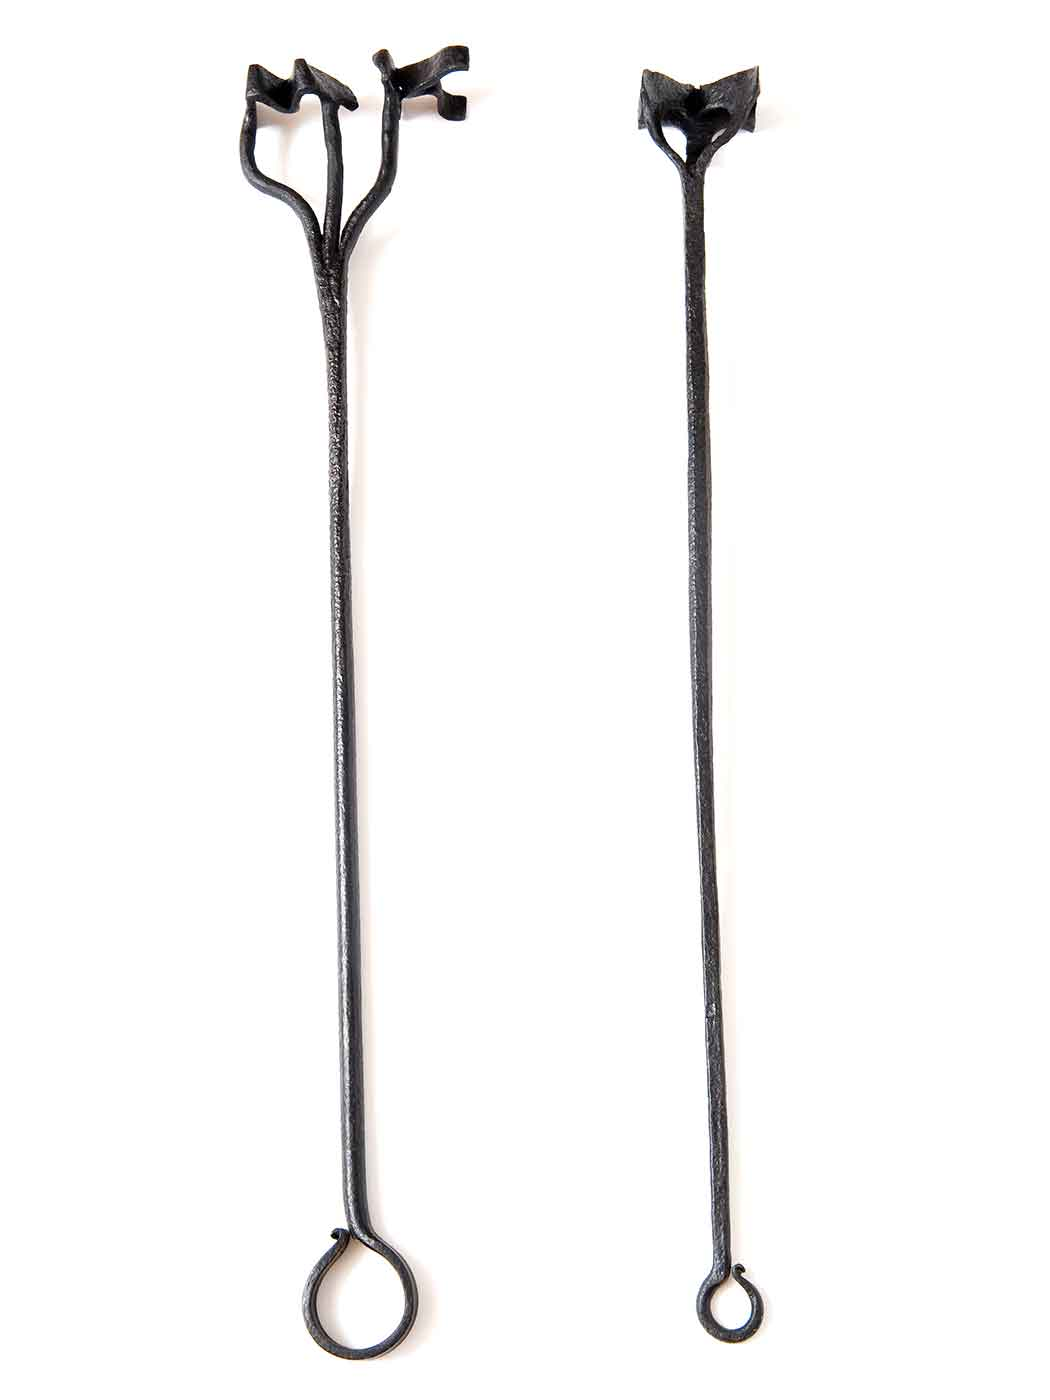 Pair of branding irons. - click to view larger image